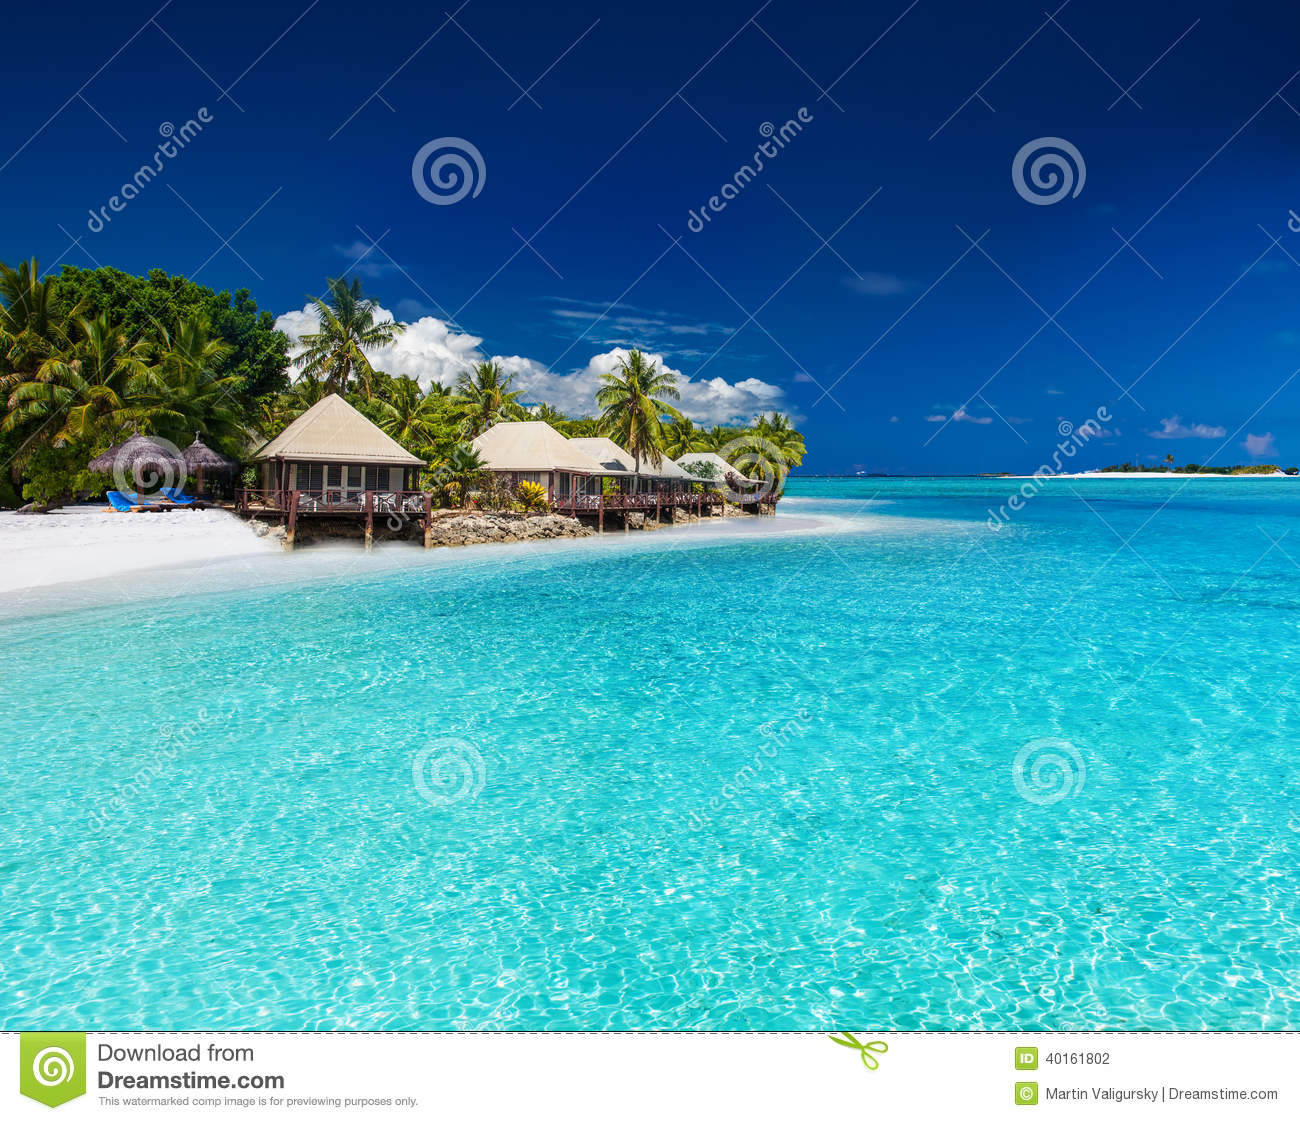 Beach Island: Beach Villas On Small Tropical Island Stock Photo